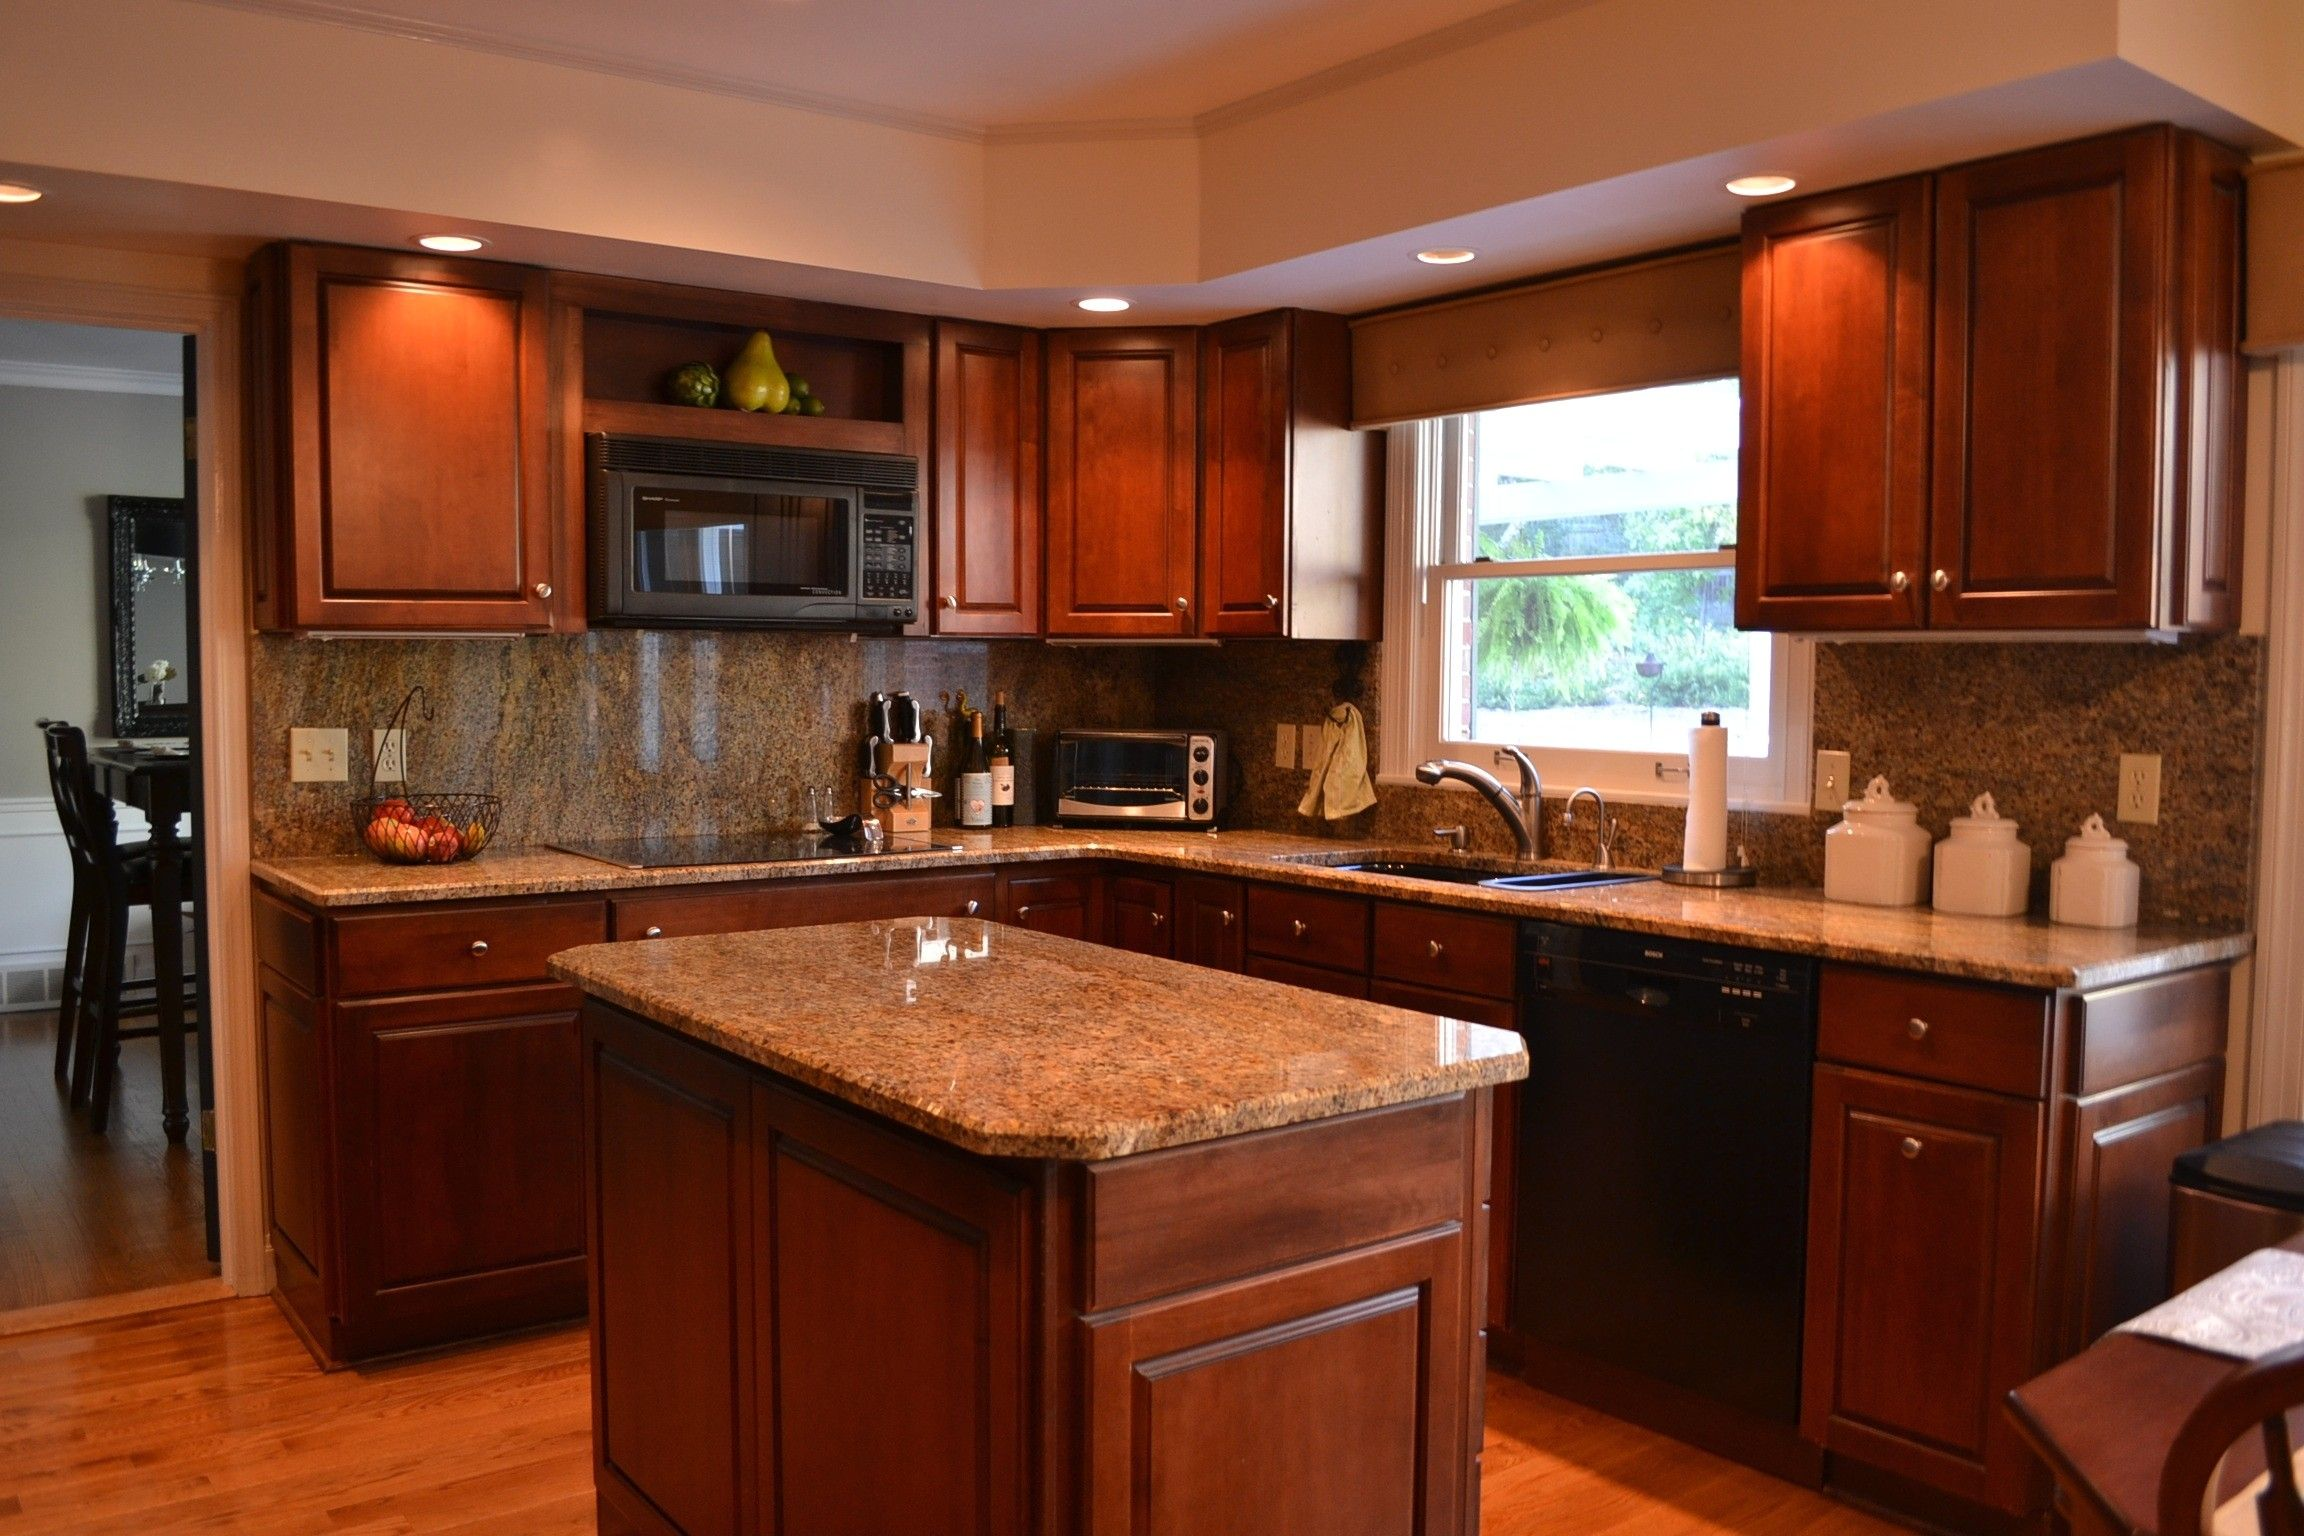 Red Cherry Rope Cabinets With Decorative End Doors And Typhoon Bordeaux Granite Cherry Wood Kitchen Cabinets Kitchen Cabinet Design Cherry Cabinets Kitchen